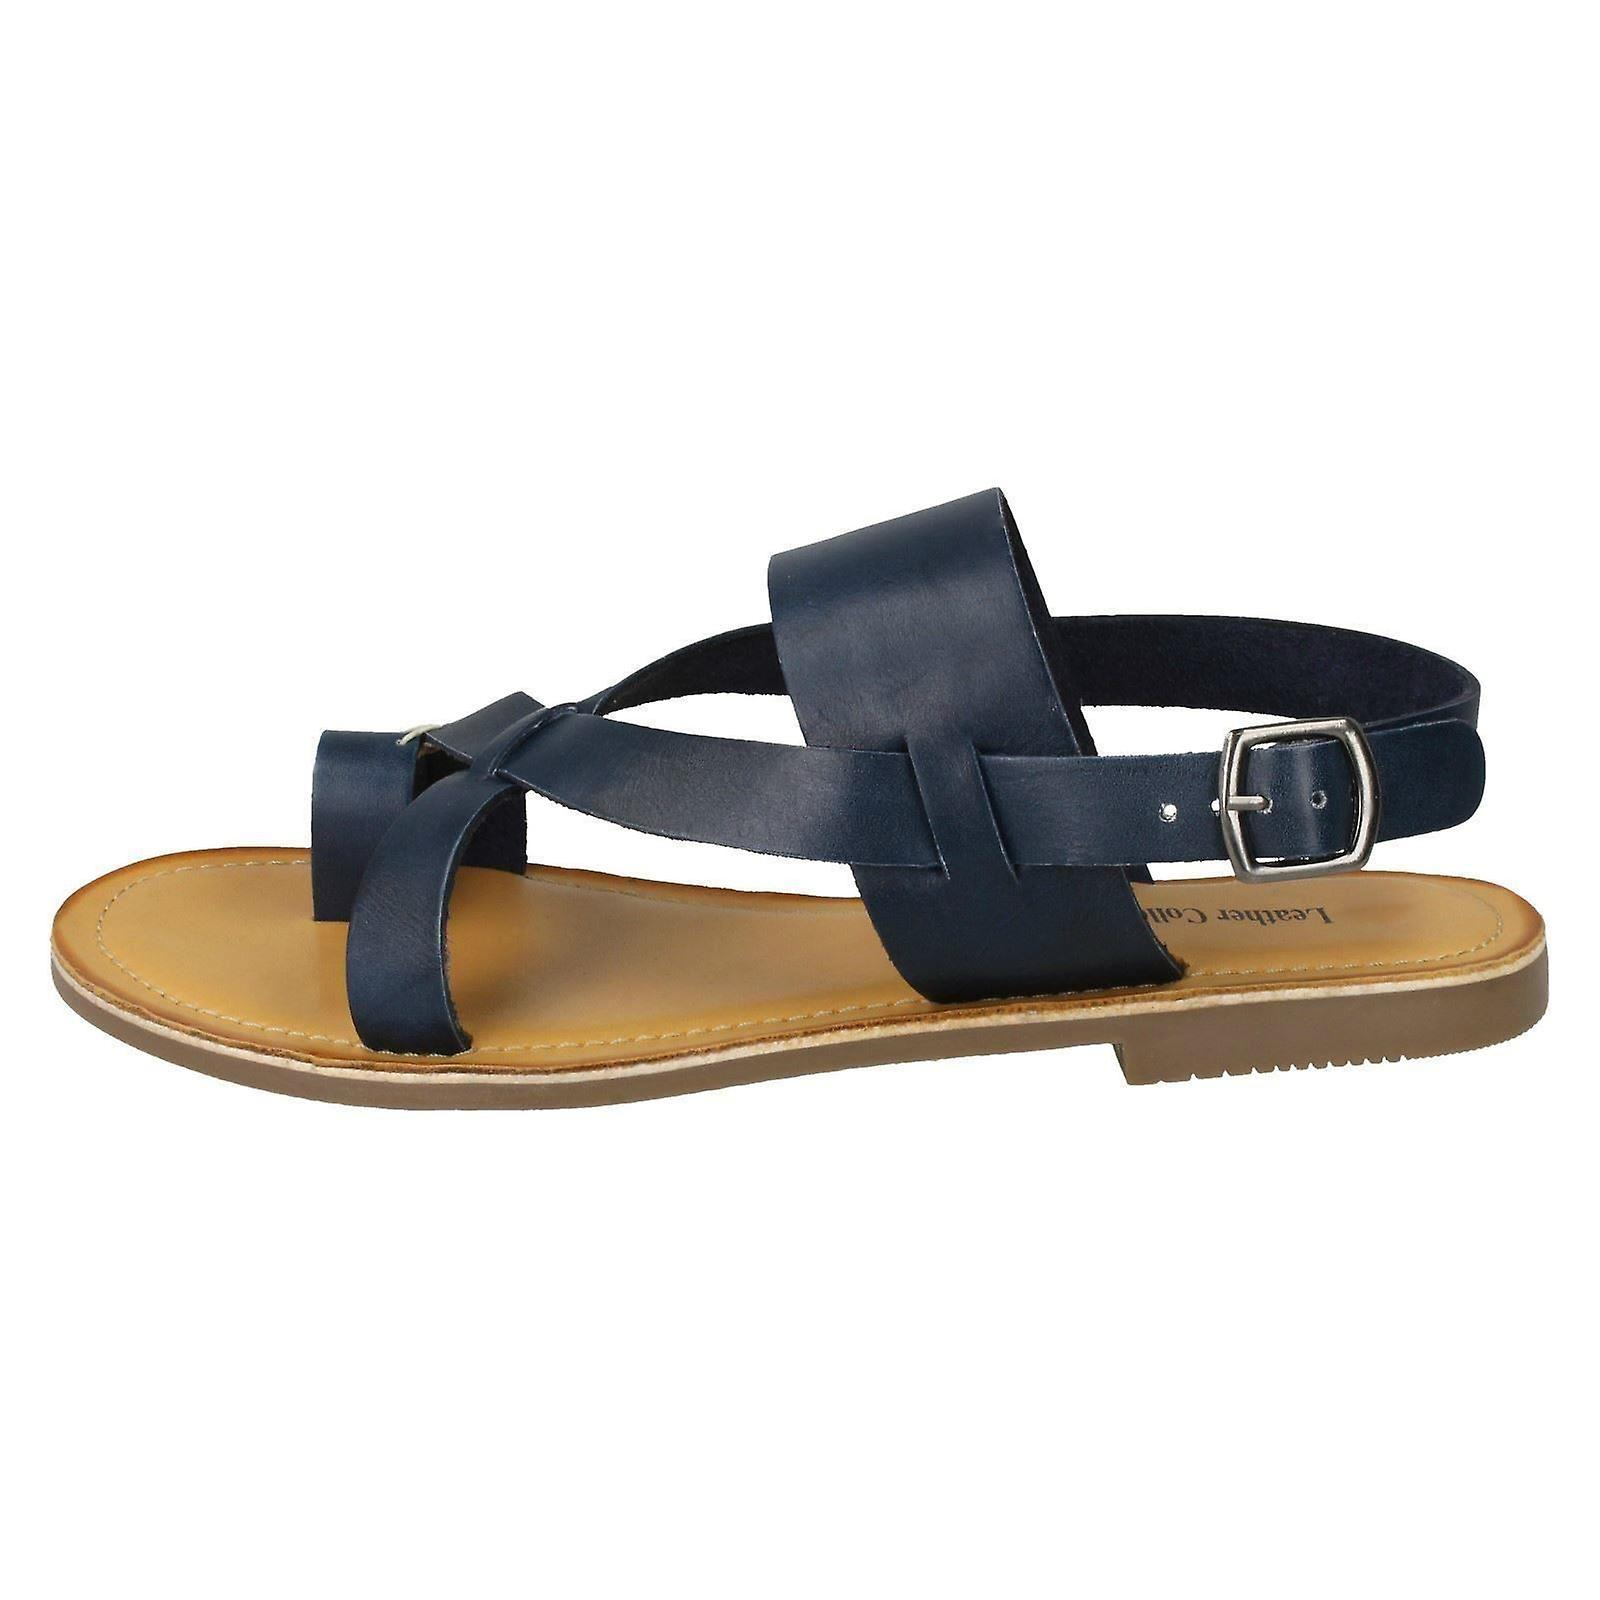 Collection 39 Sandals UK Size EU Size Navy Toeloop F00127 US 8 Size Leather 6 Ladies Leather 0pw7x5qq